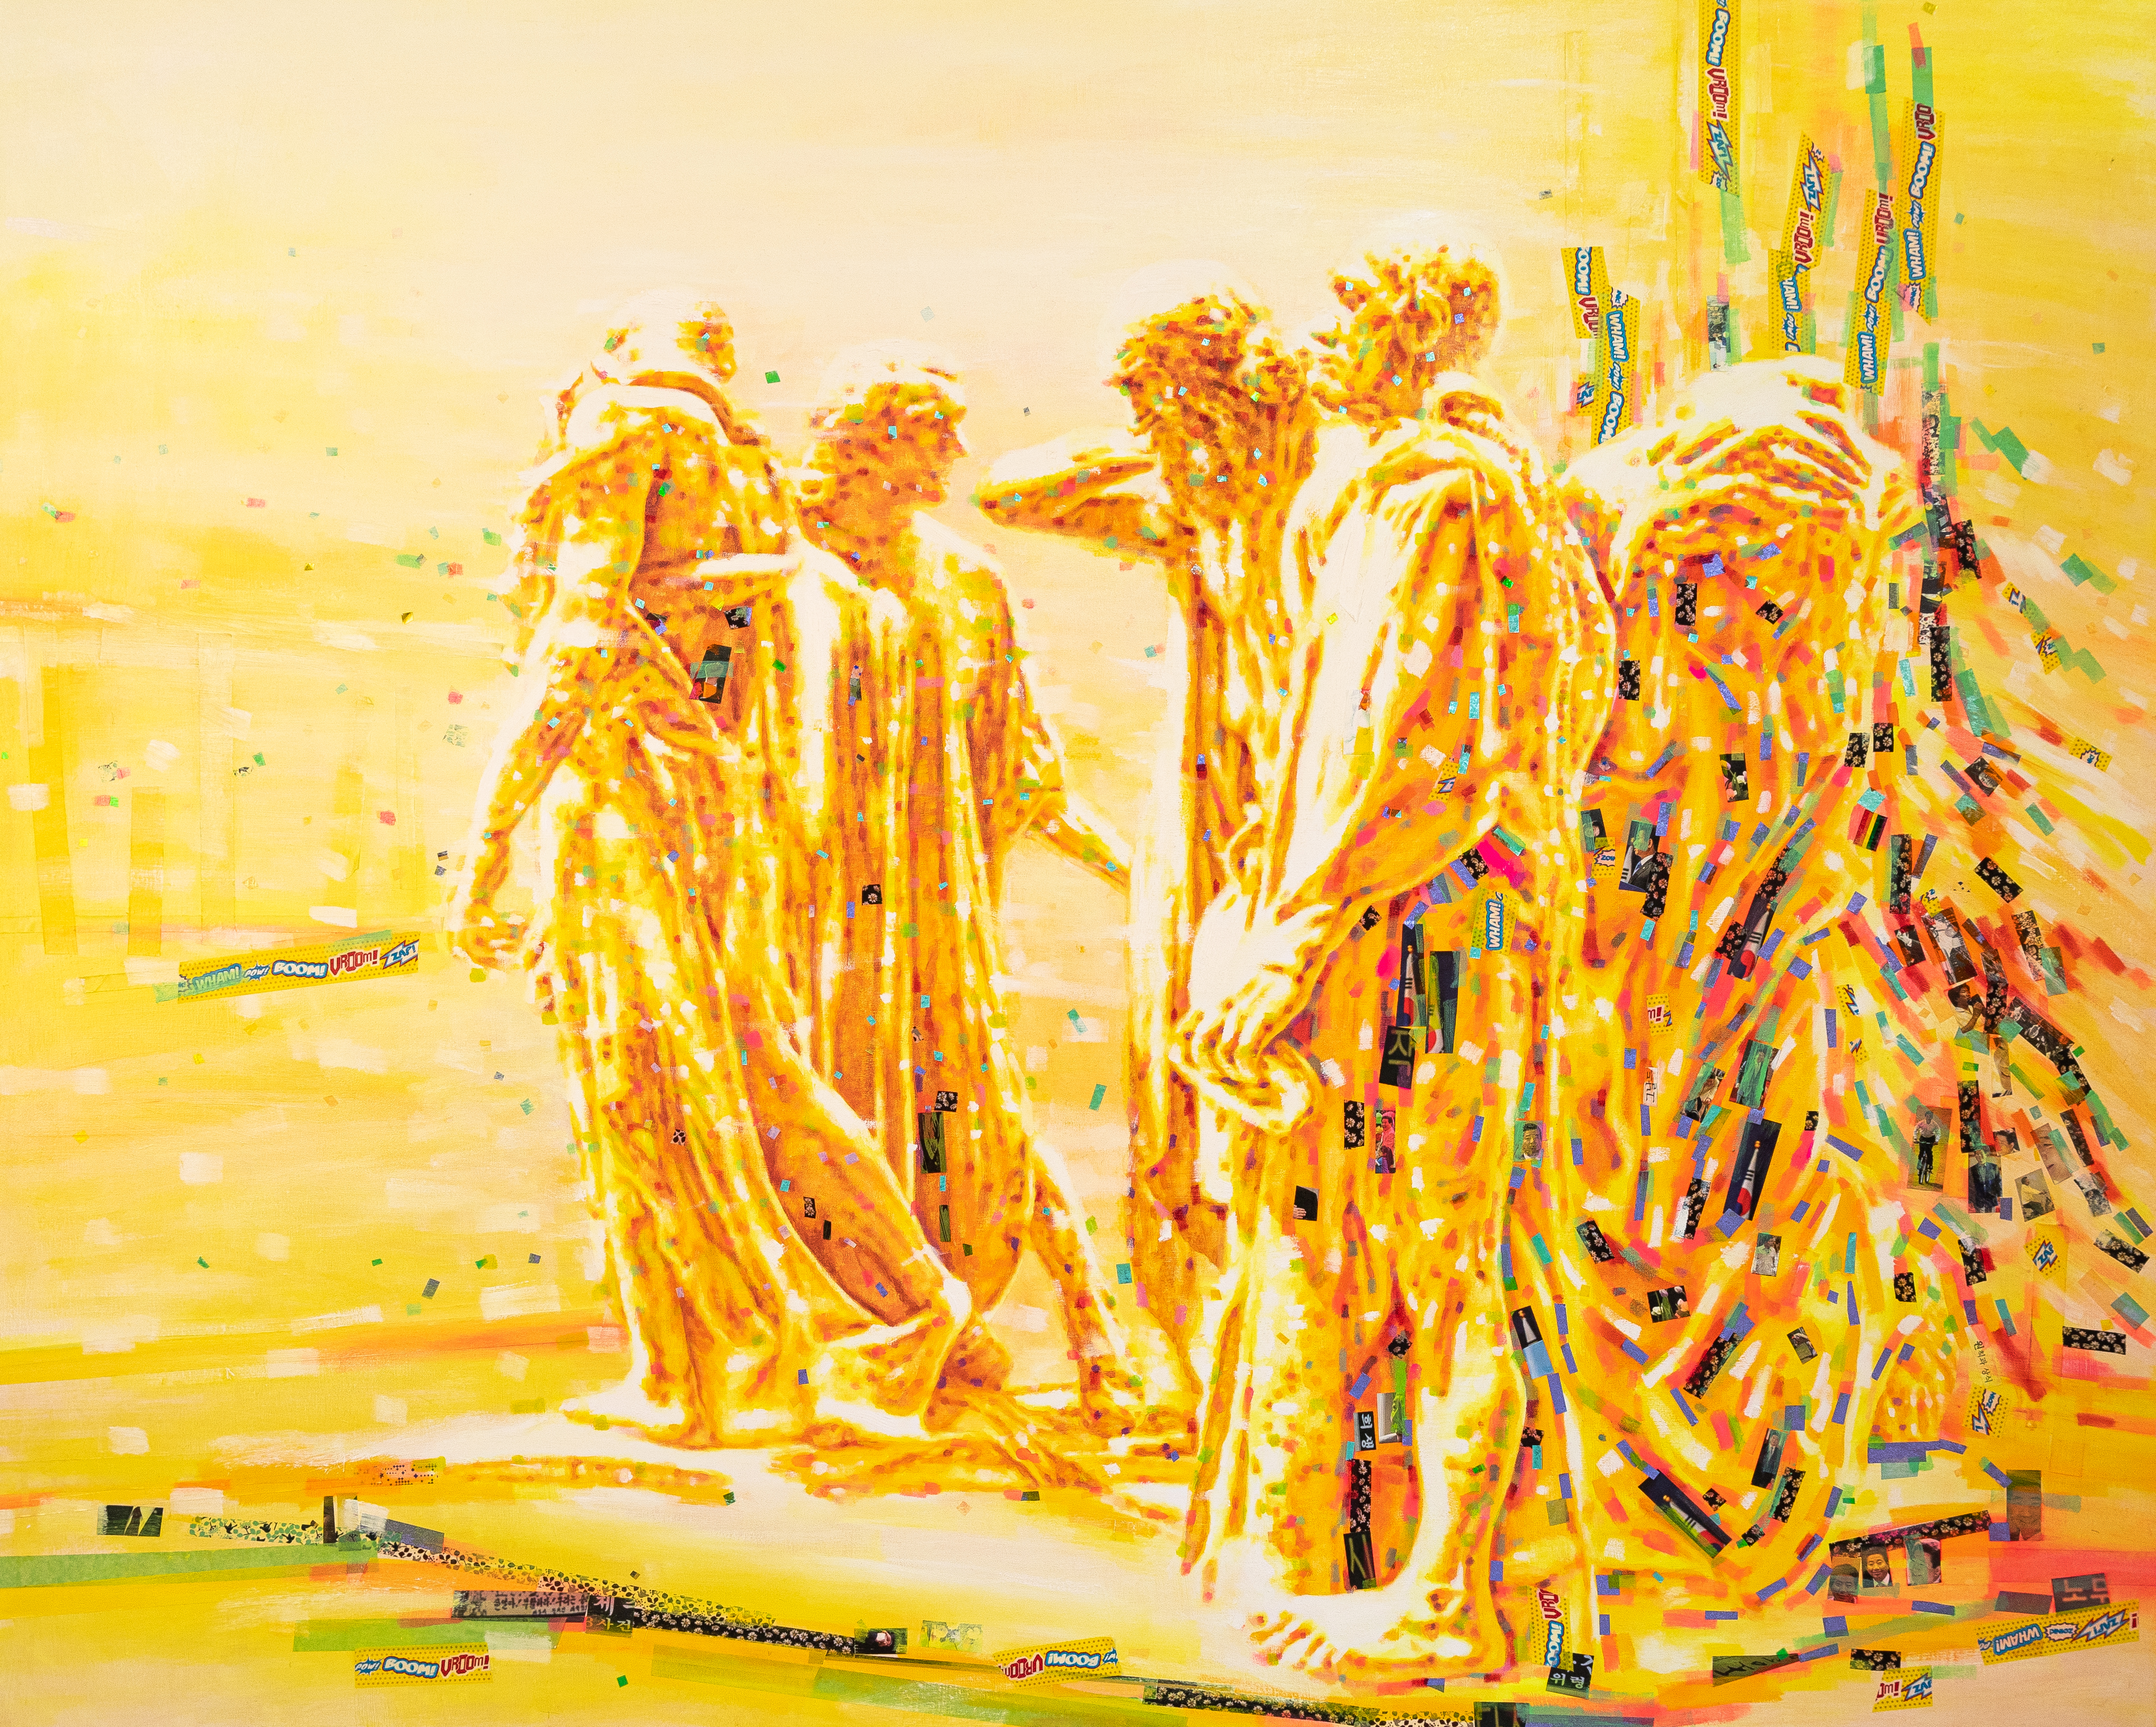 Memories of Colors, The Burghers of Calais